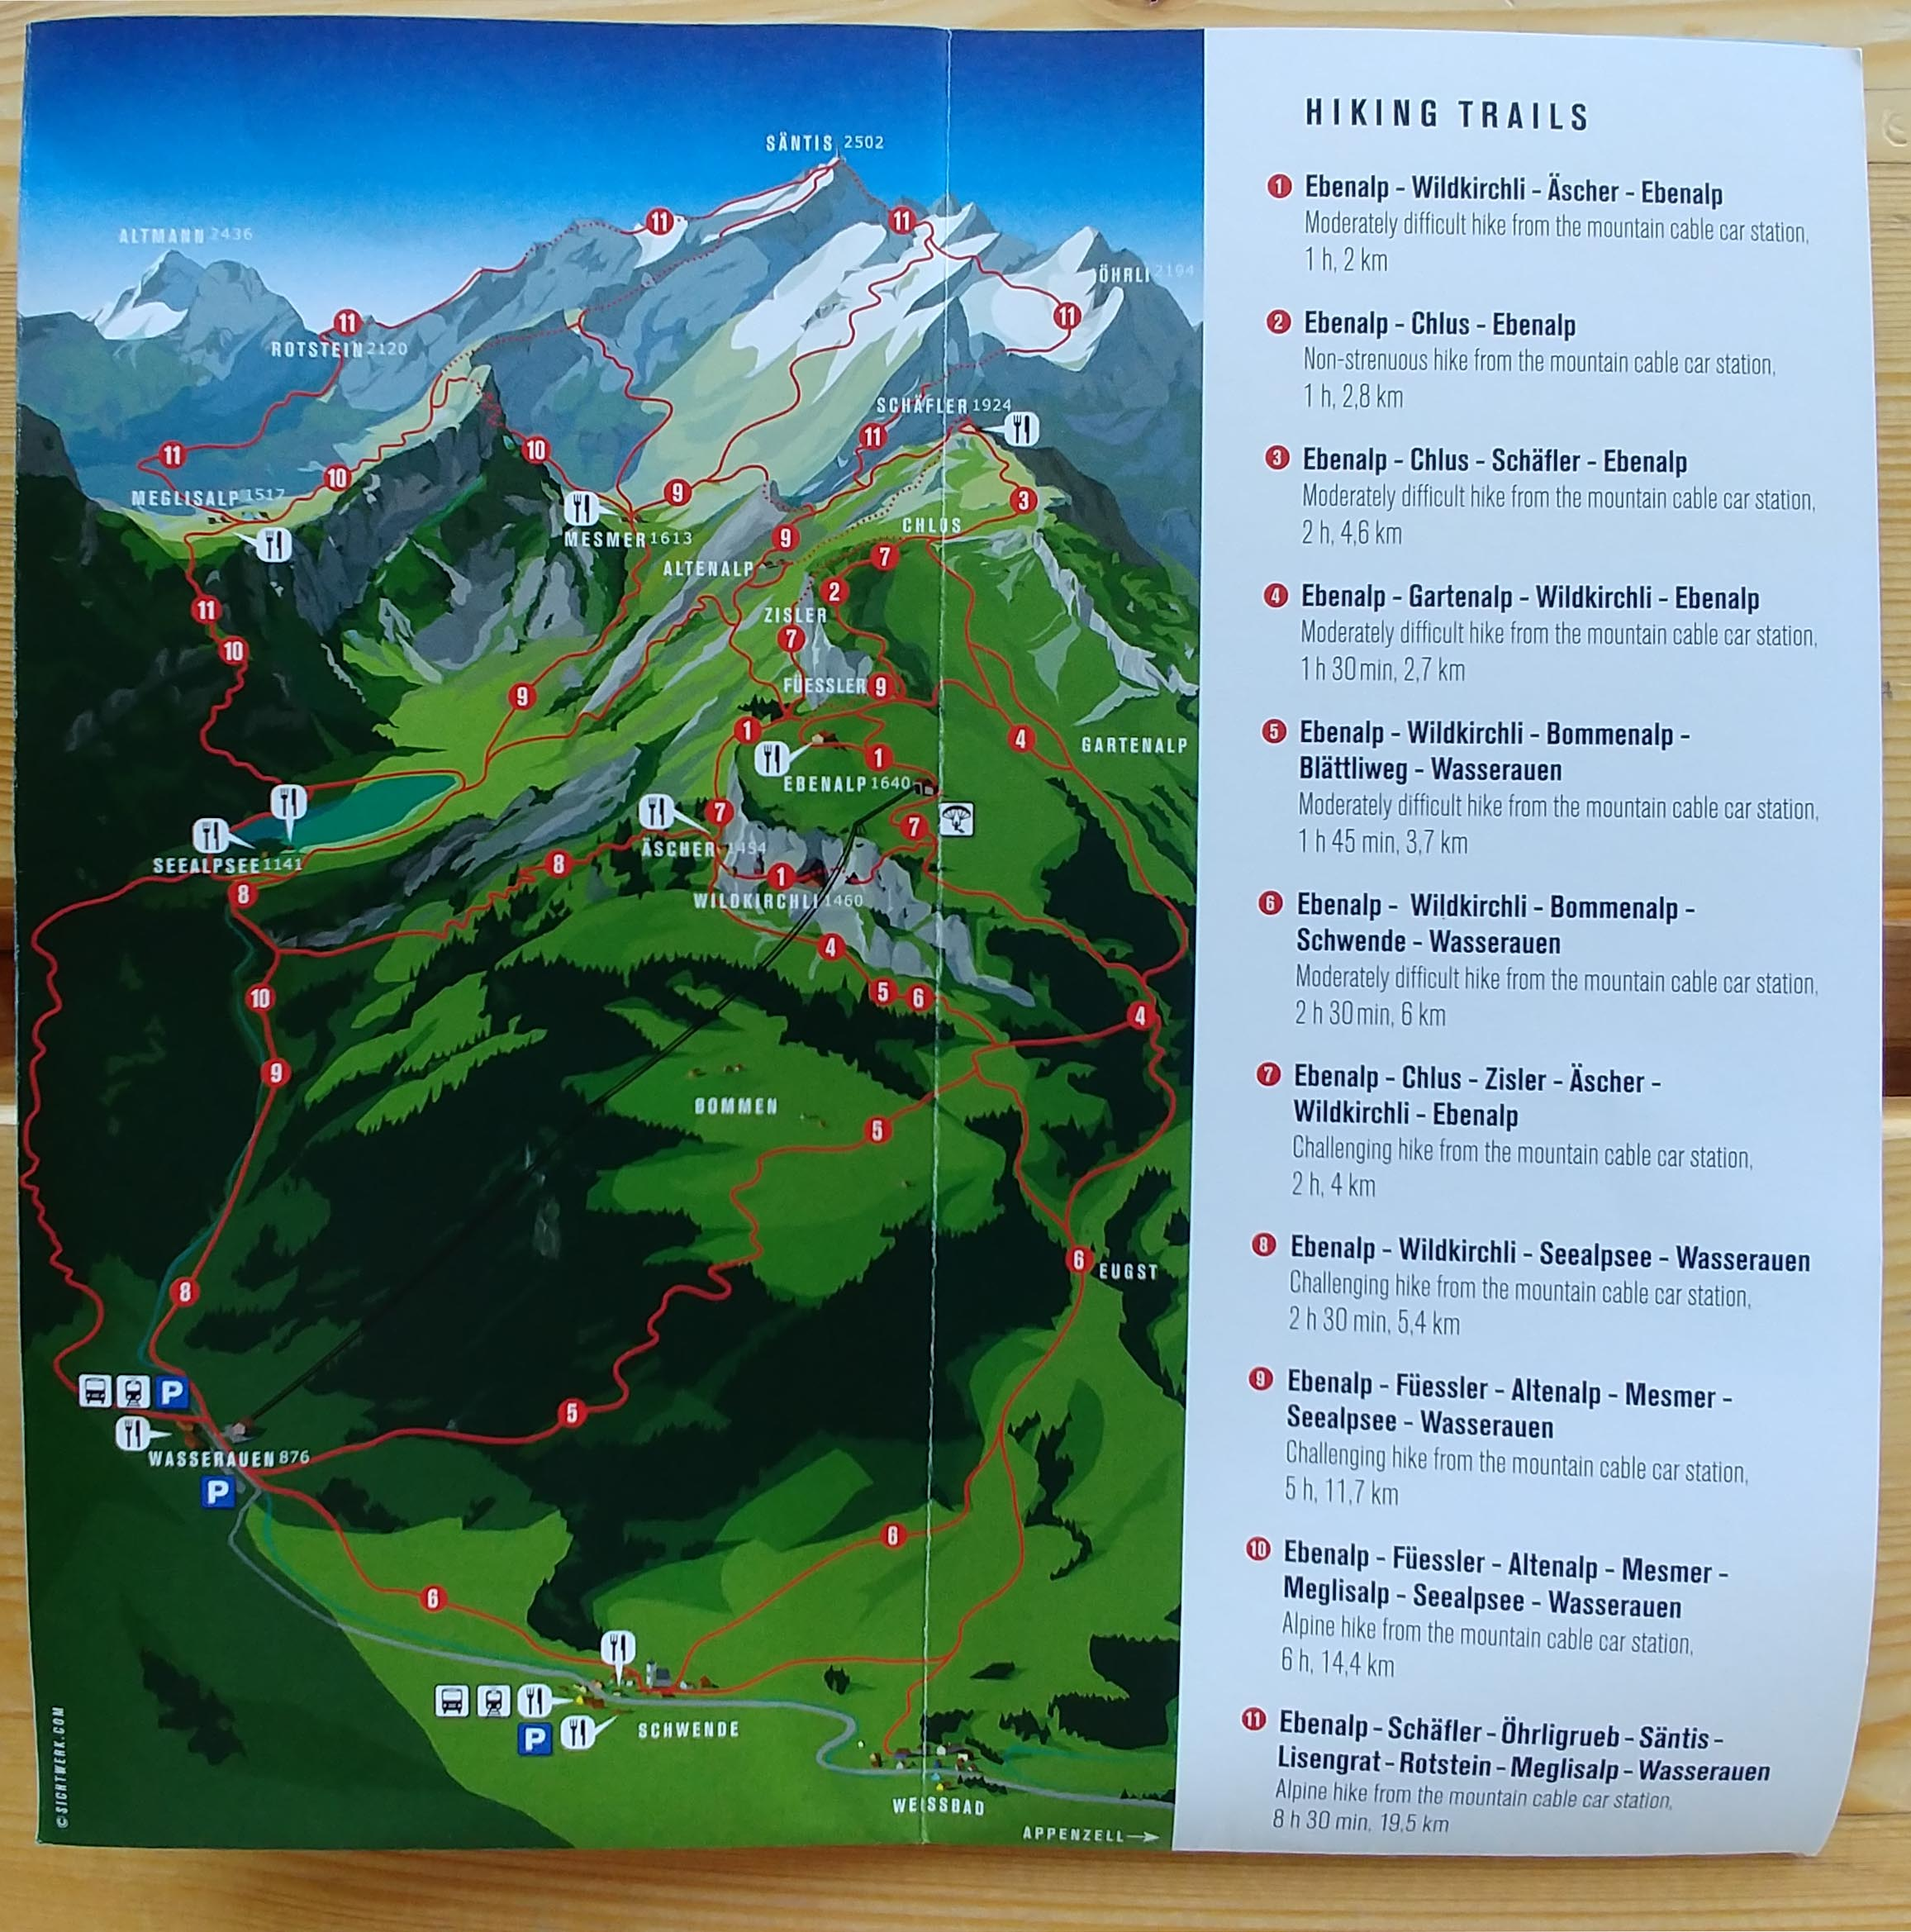 Hiking trails at Ebenalp